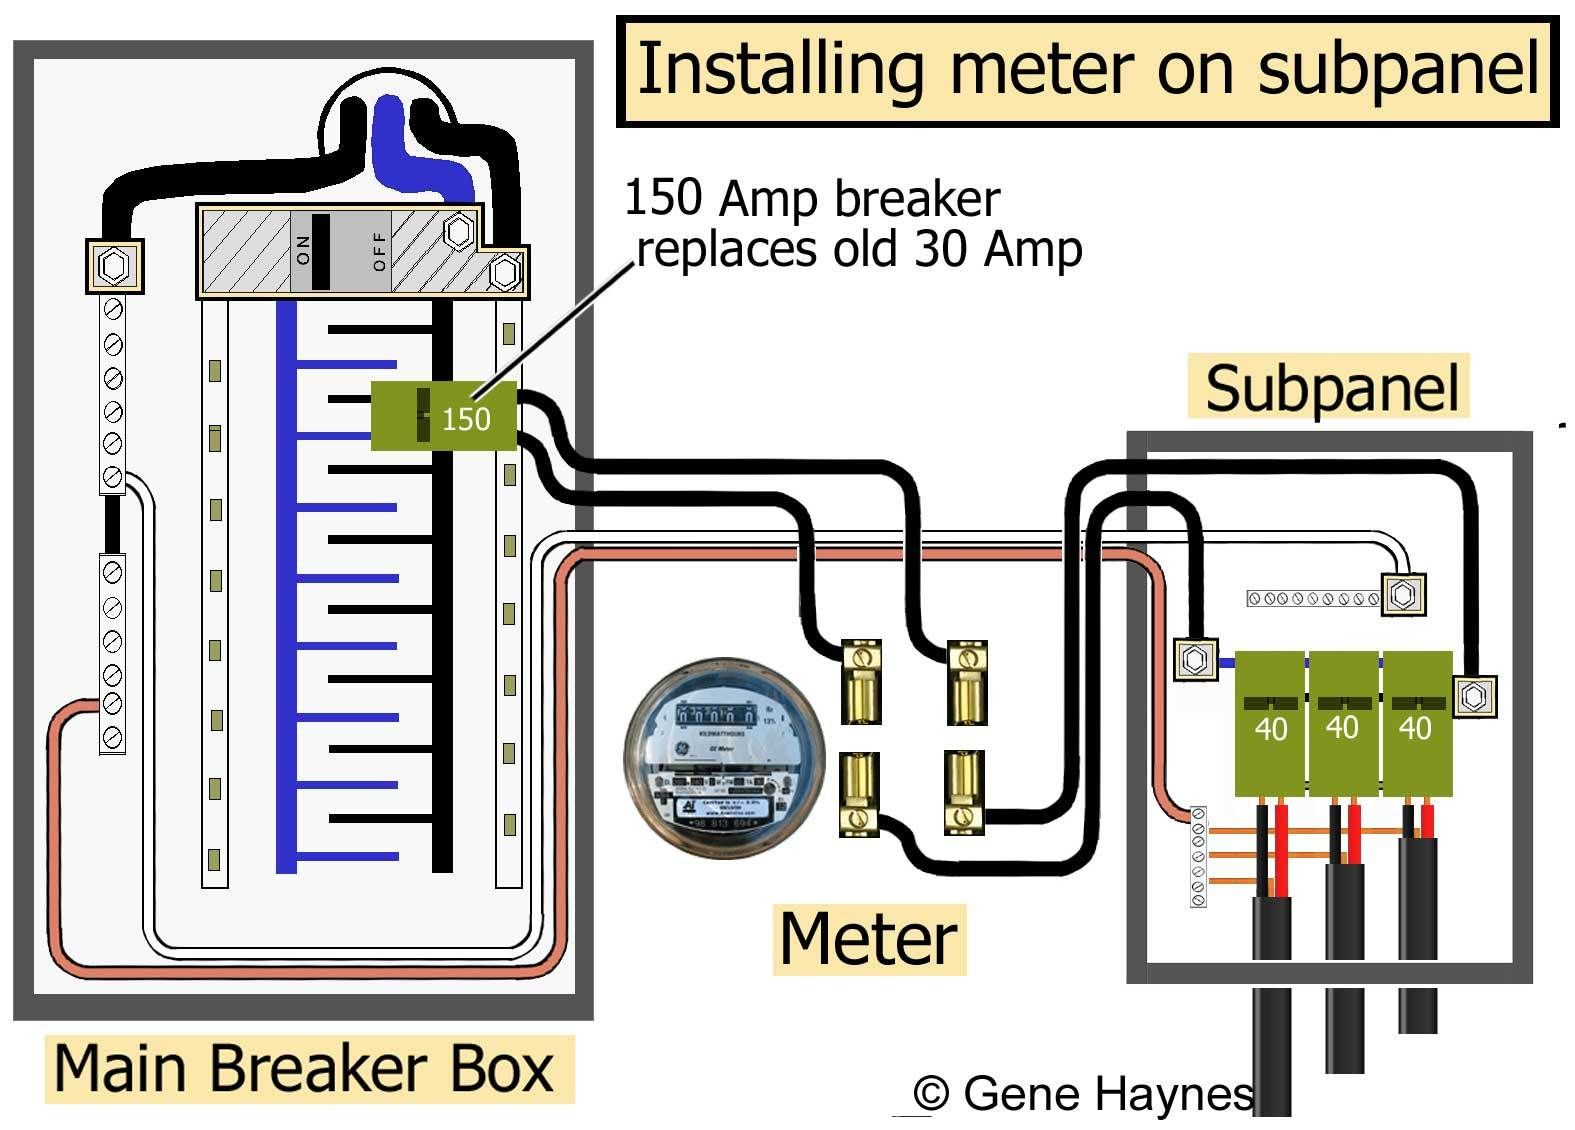 Electric Sub Meter Wiring Diagram - Wirdig, Wiring Diagram - Electrical Sub Panel Wiring Diagram